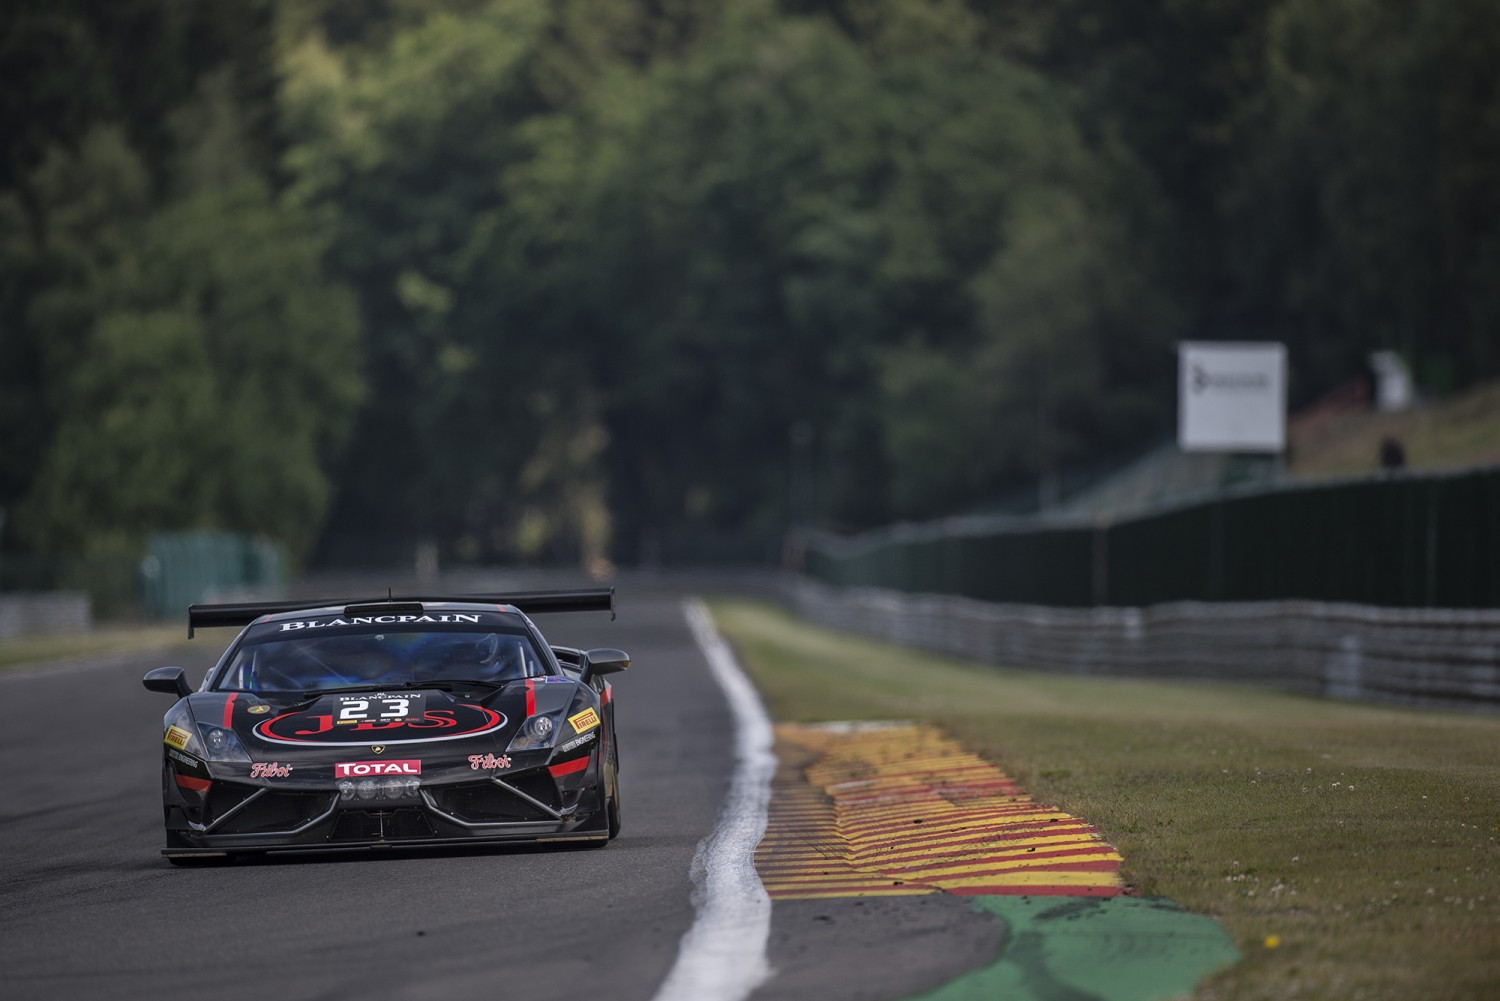 Lowndes to return to Spa in All-Aussie assault